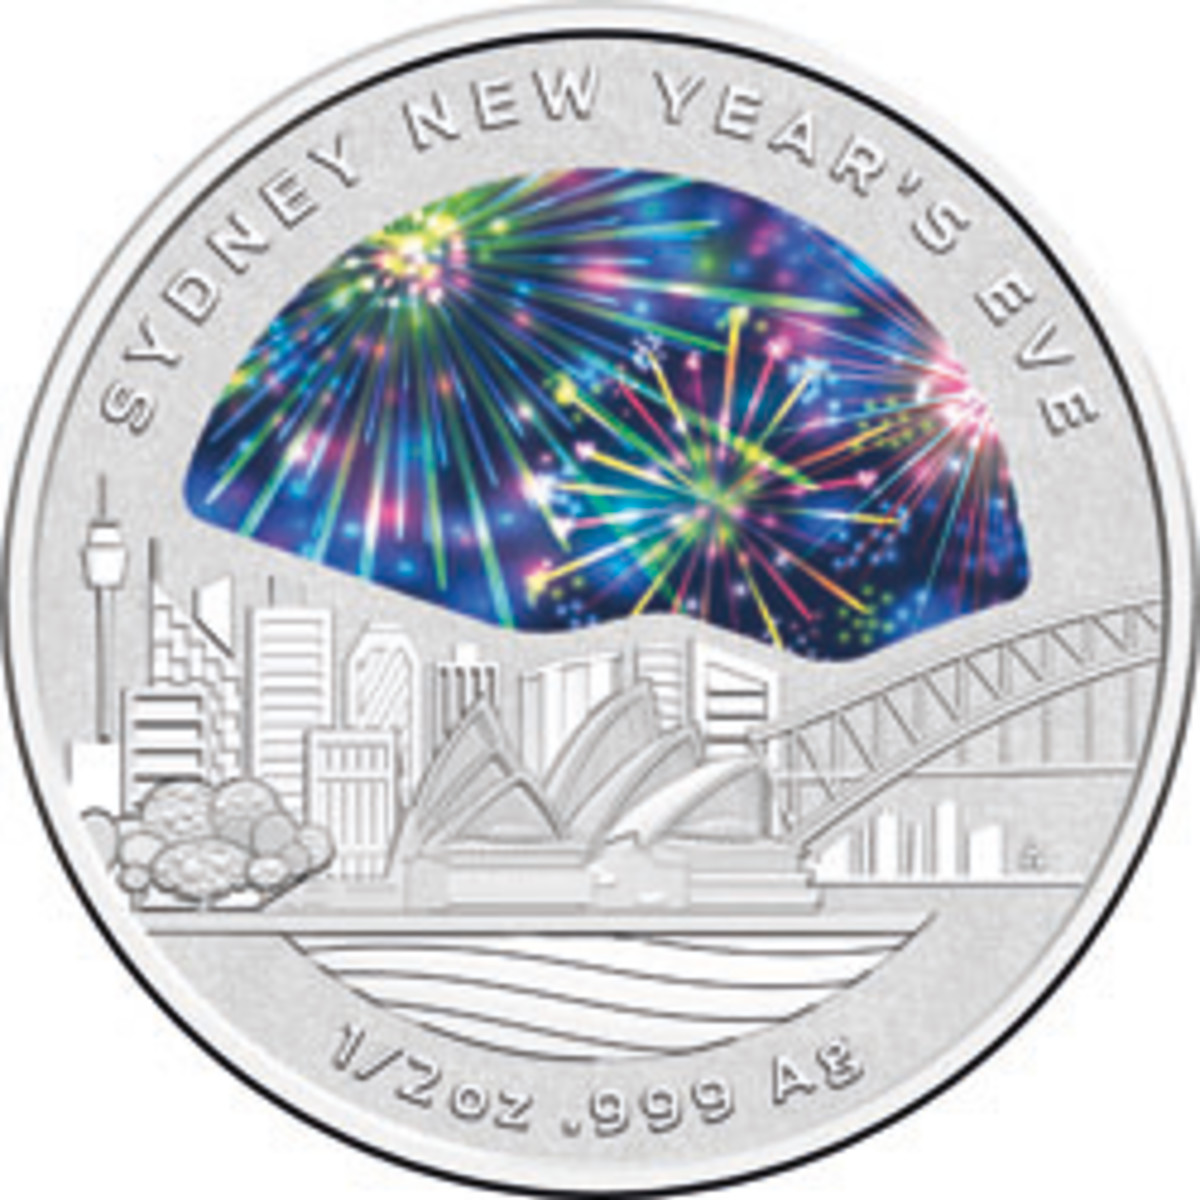 Australia's New Year coin celebrates Sydney's traditional firework display that lights up city's harbor. (Image courtesy RAM)